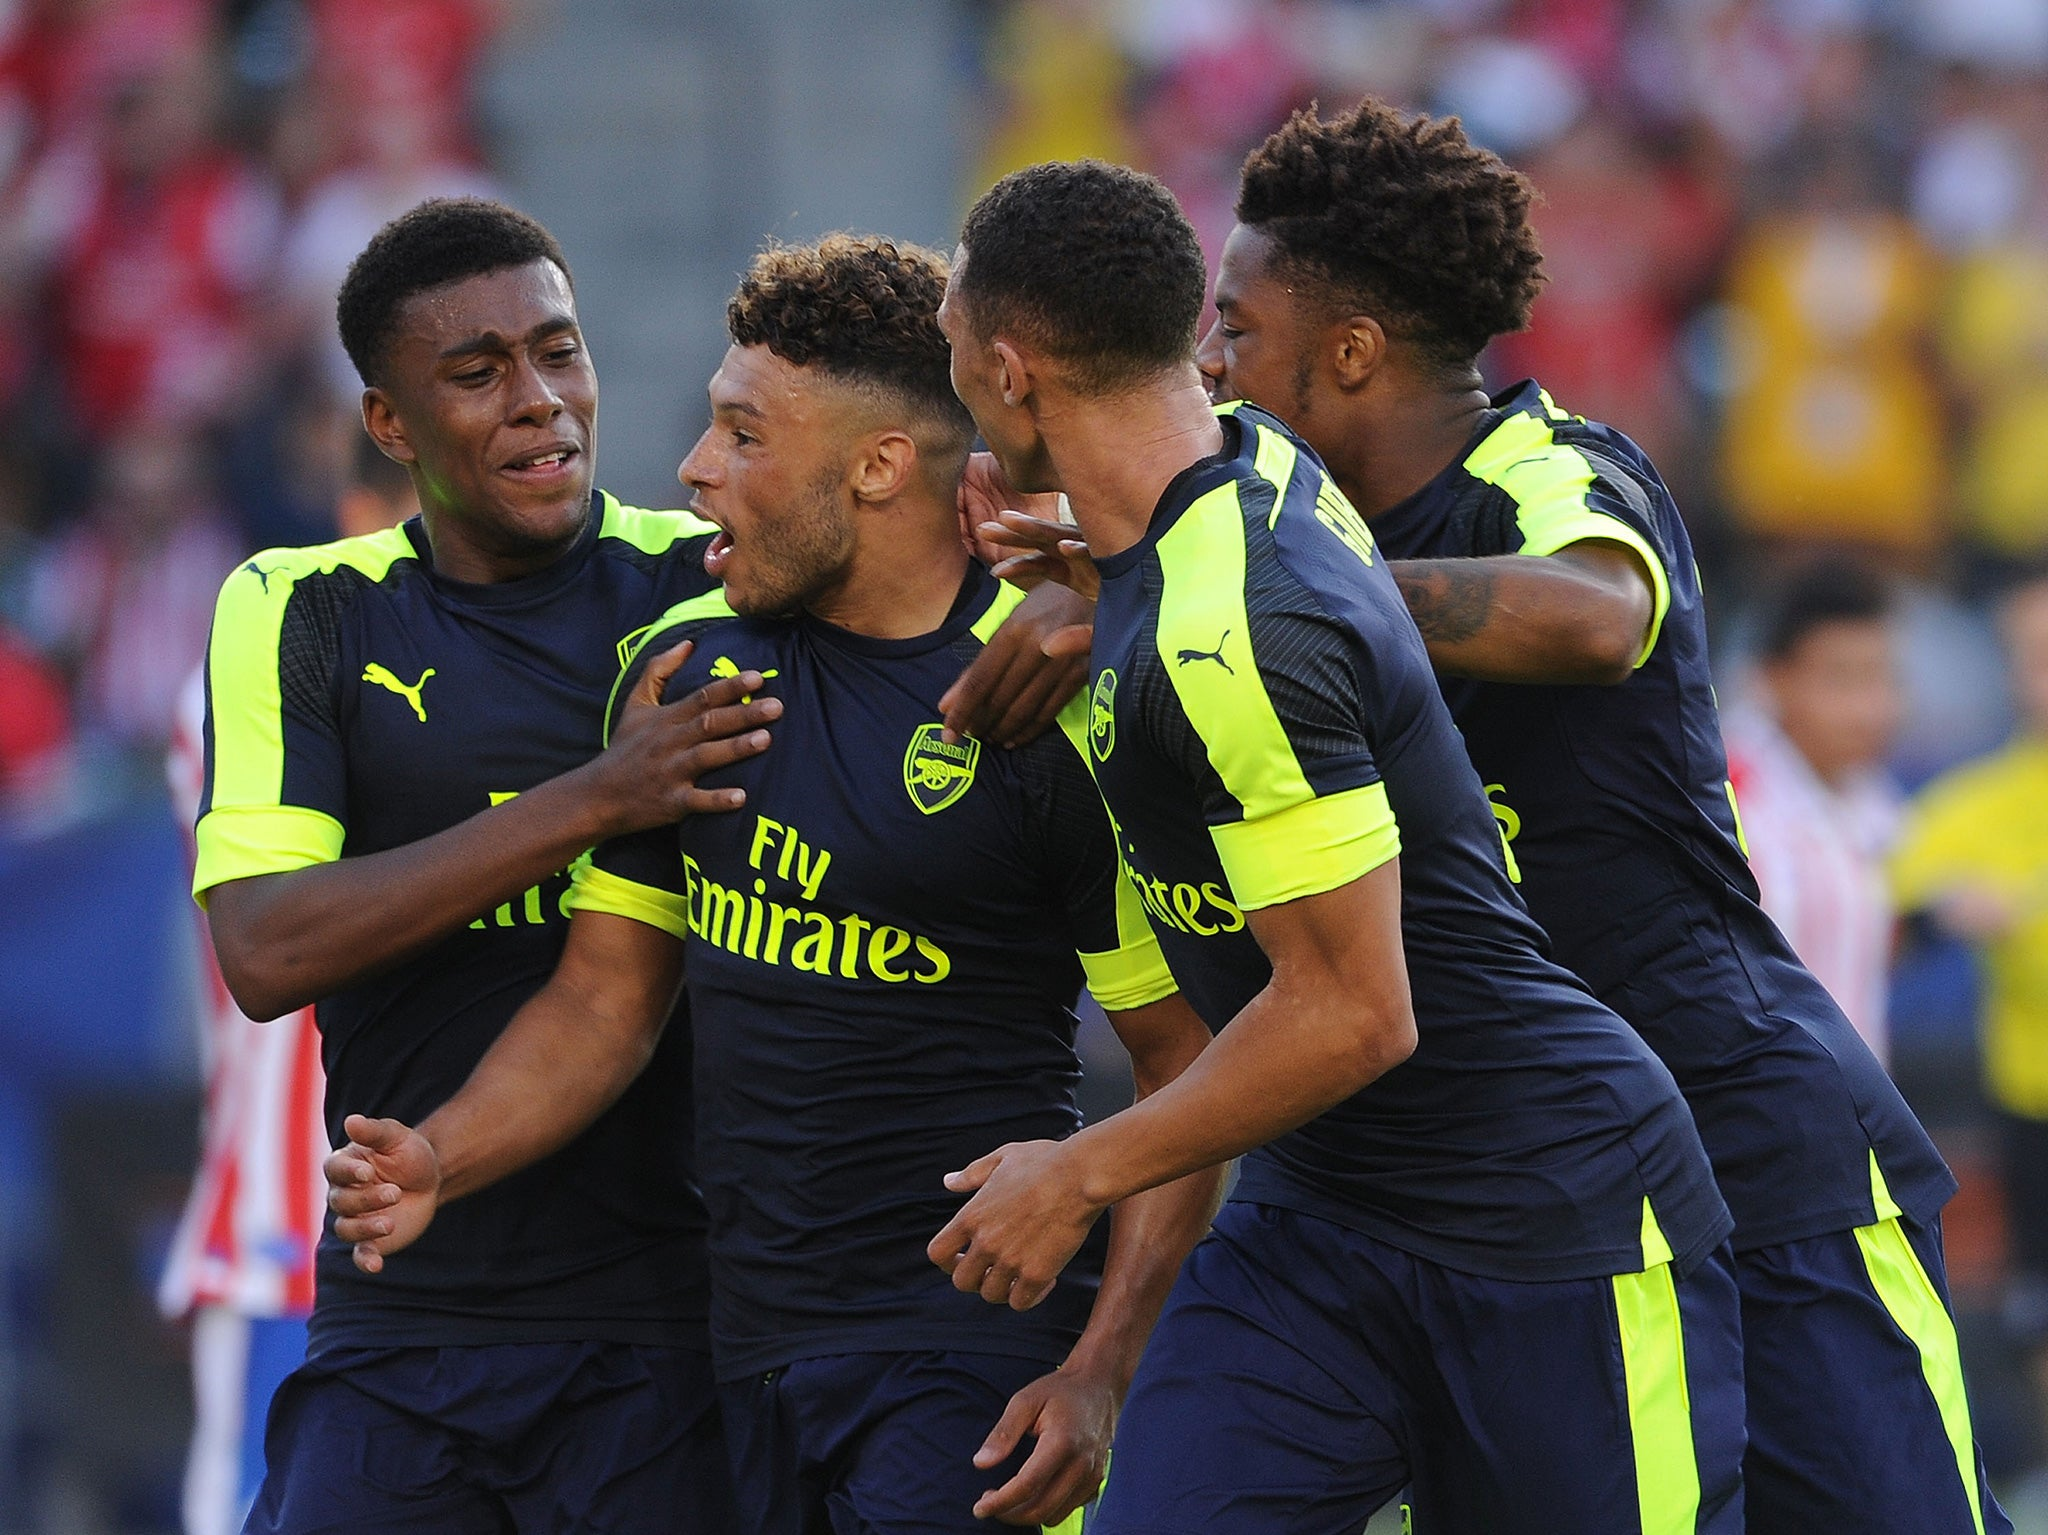 Arsenal news: Arsene Wenger challenges Alex Oxlade-Chamberlain to reach potential in new season